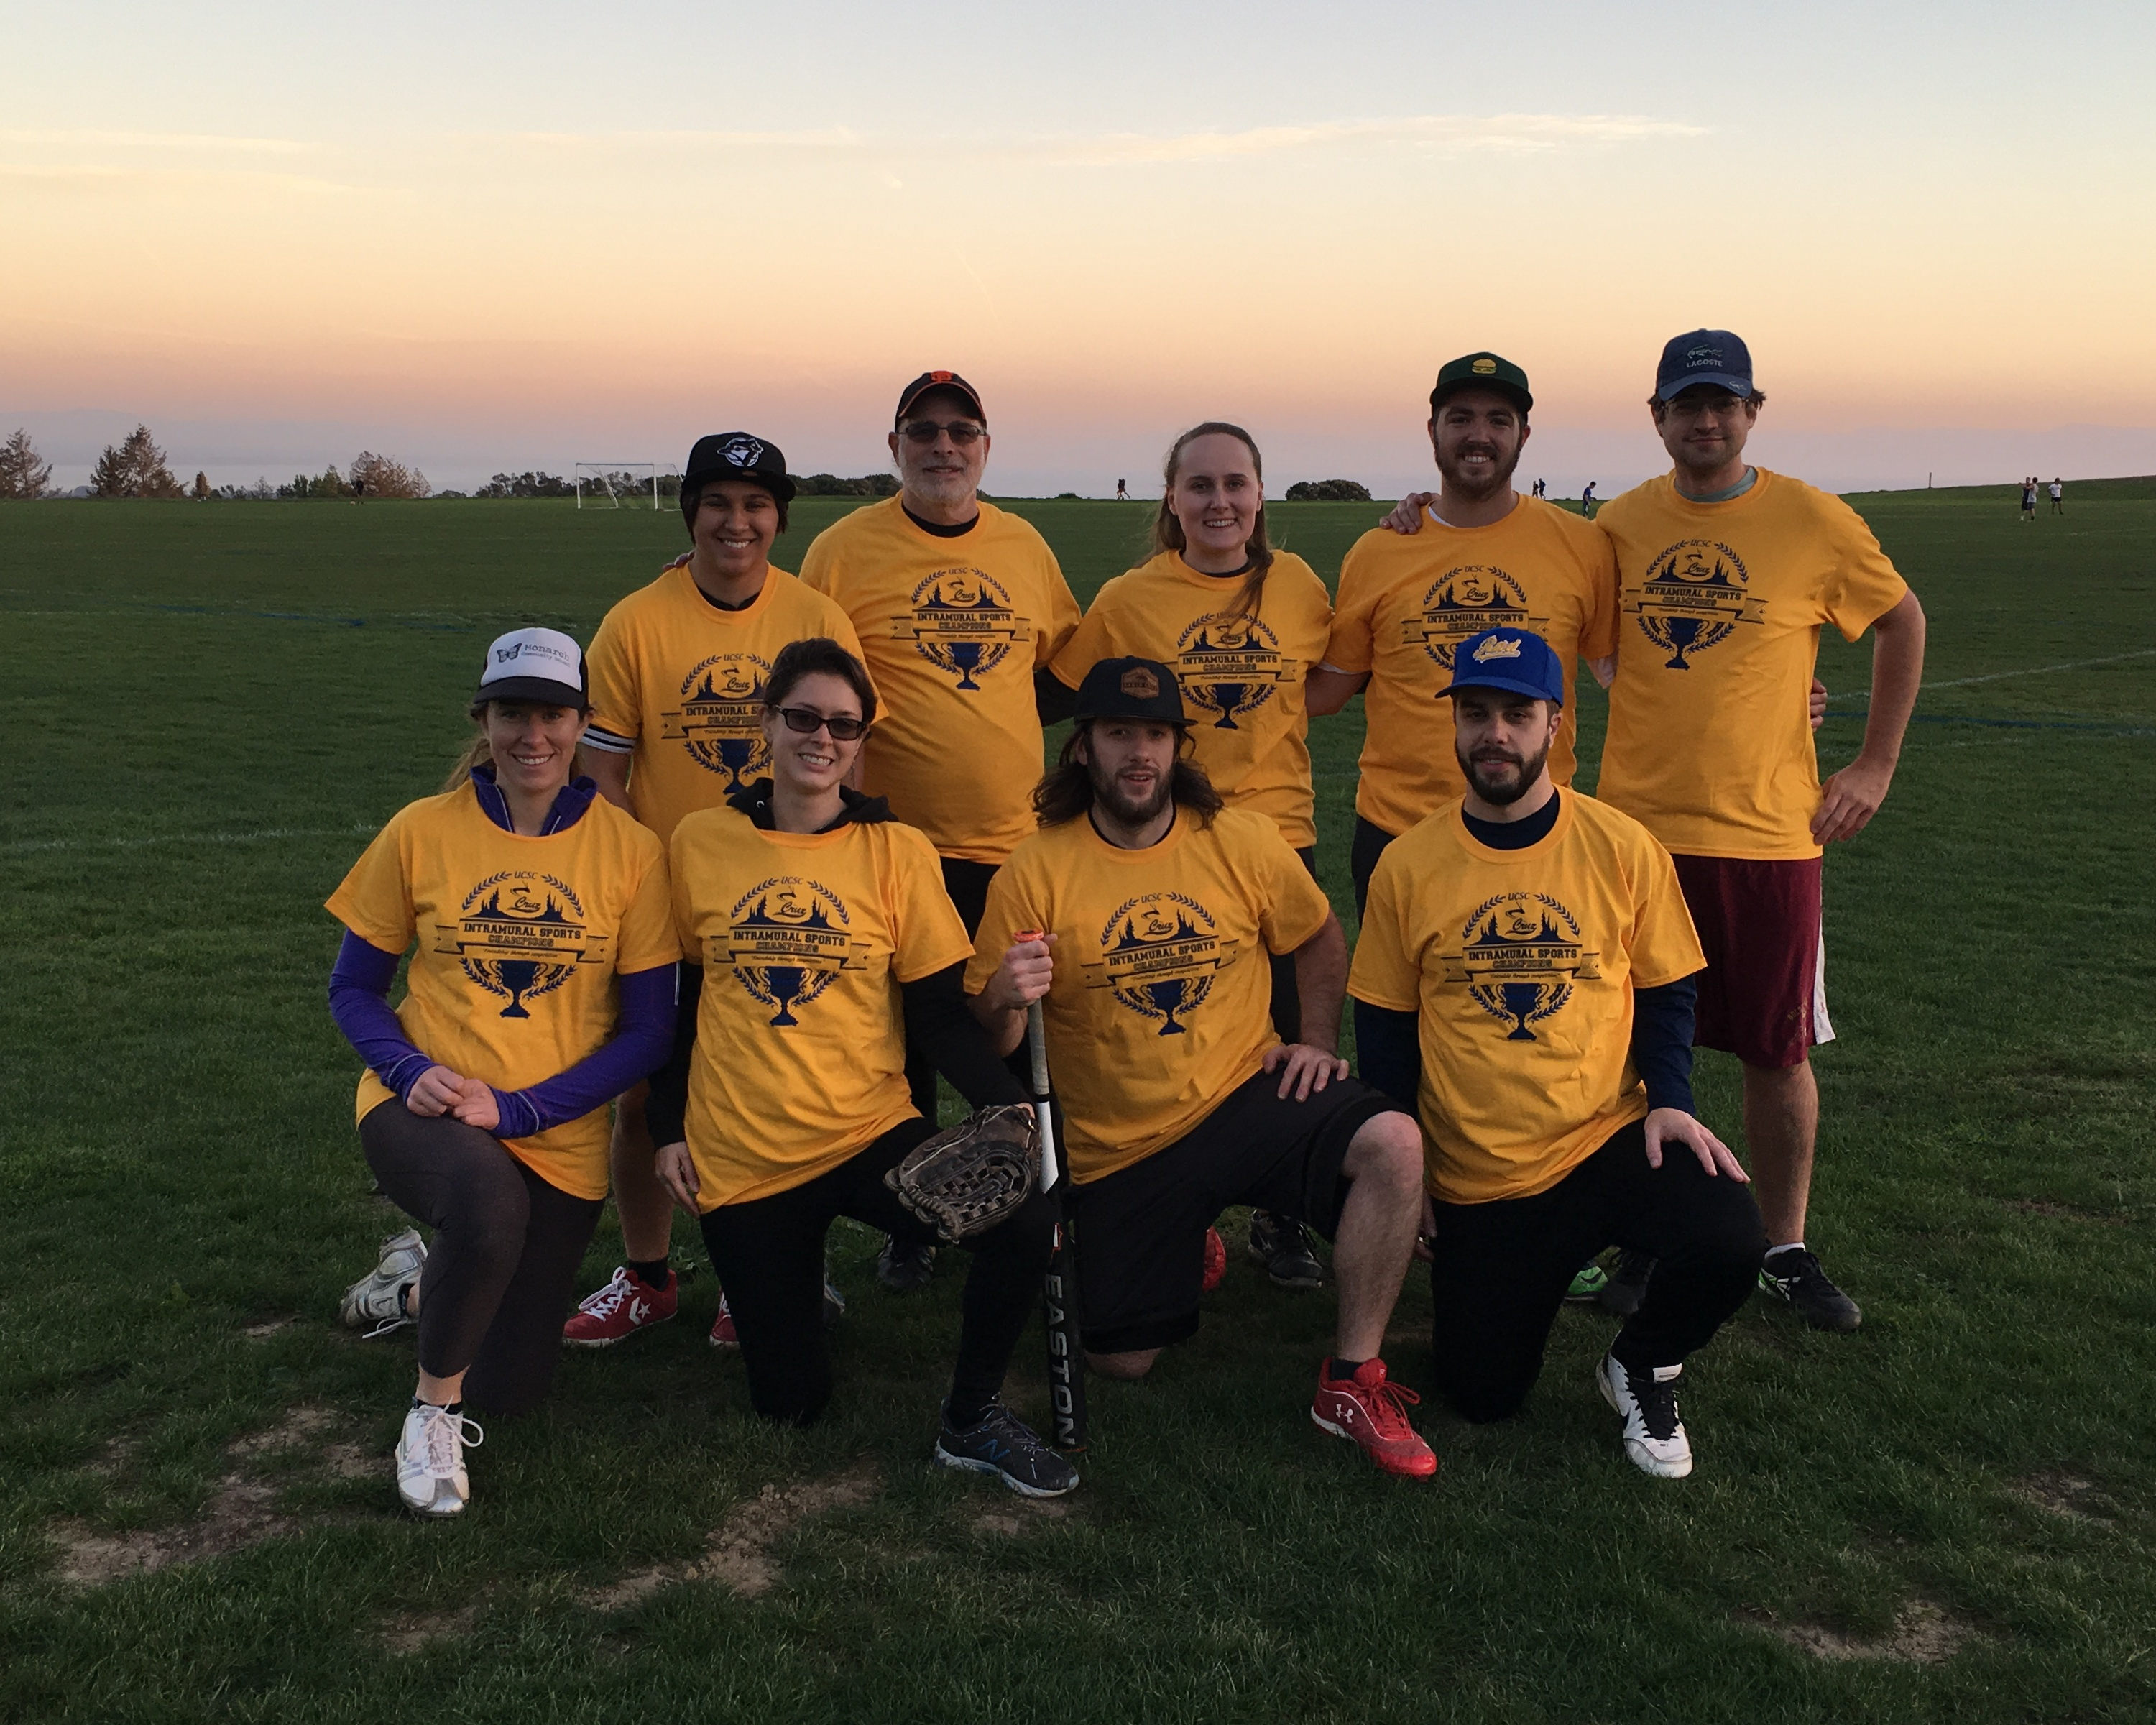 The Fall 2016 Coed Softball Championship Re-Entry Team